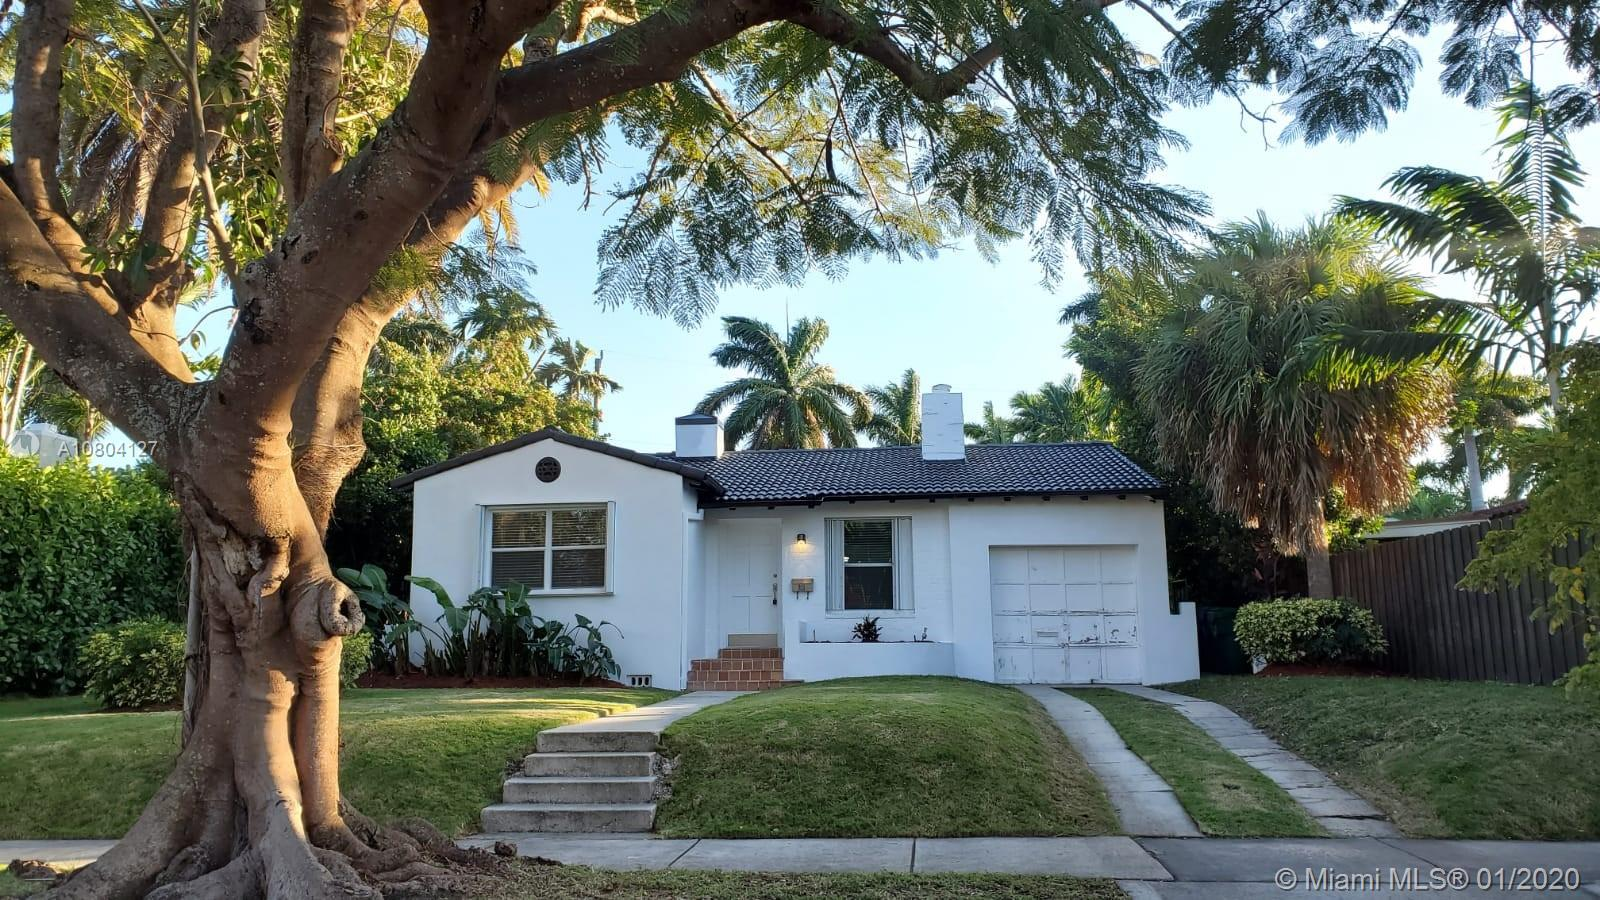 810 NE 75th St, Miami, Florida 33138, 2 Bedrooms Bedrooms, ,2 BathroomsBathrooms,Residential,For Sale,810 NE 75th St,A10804127